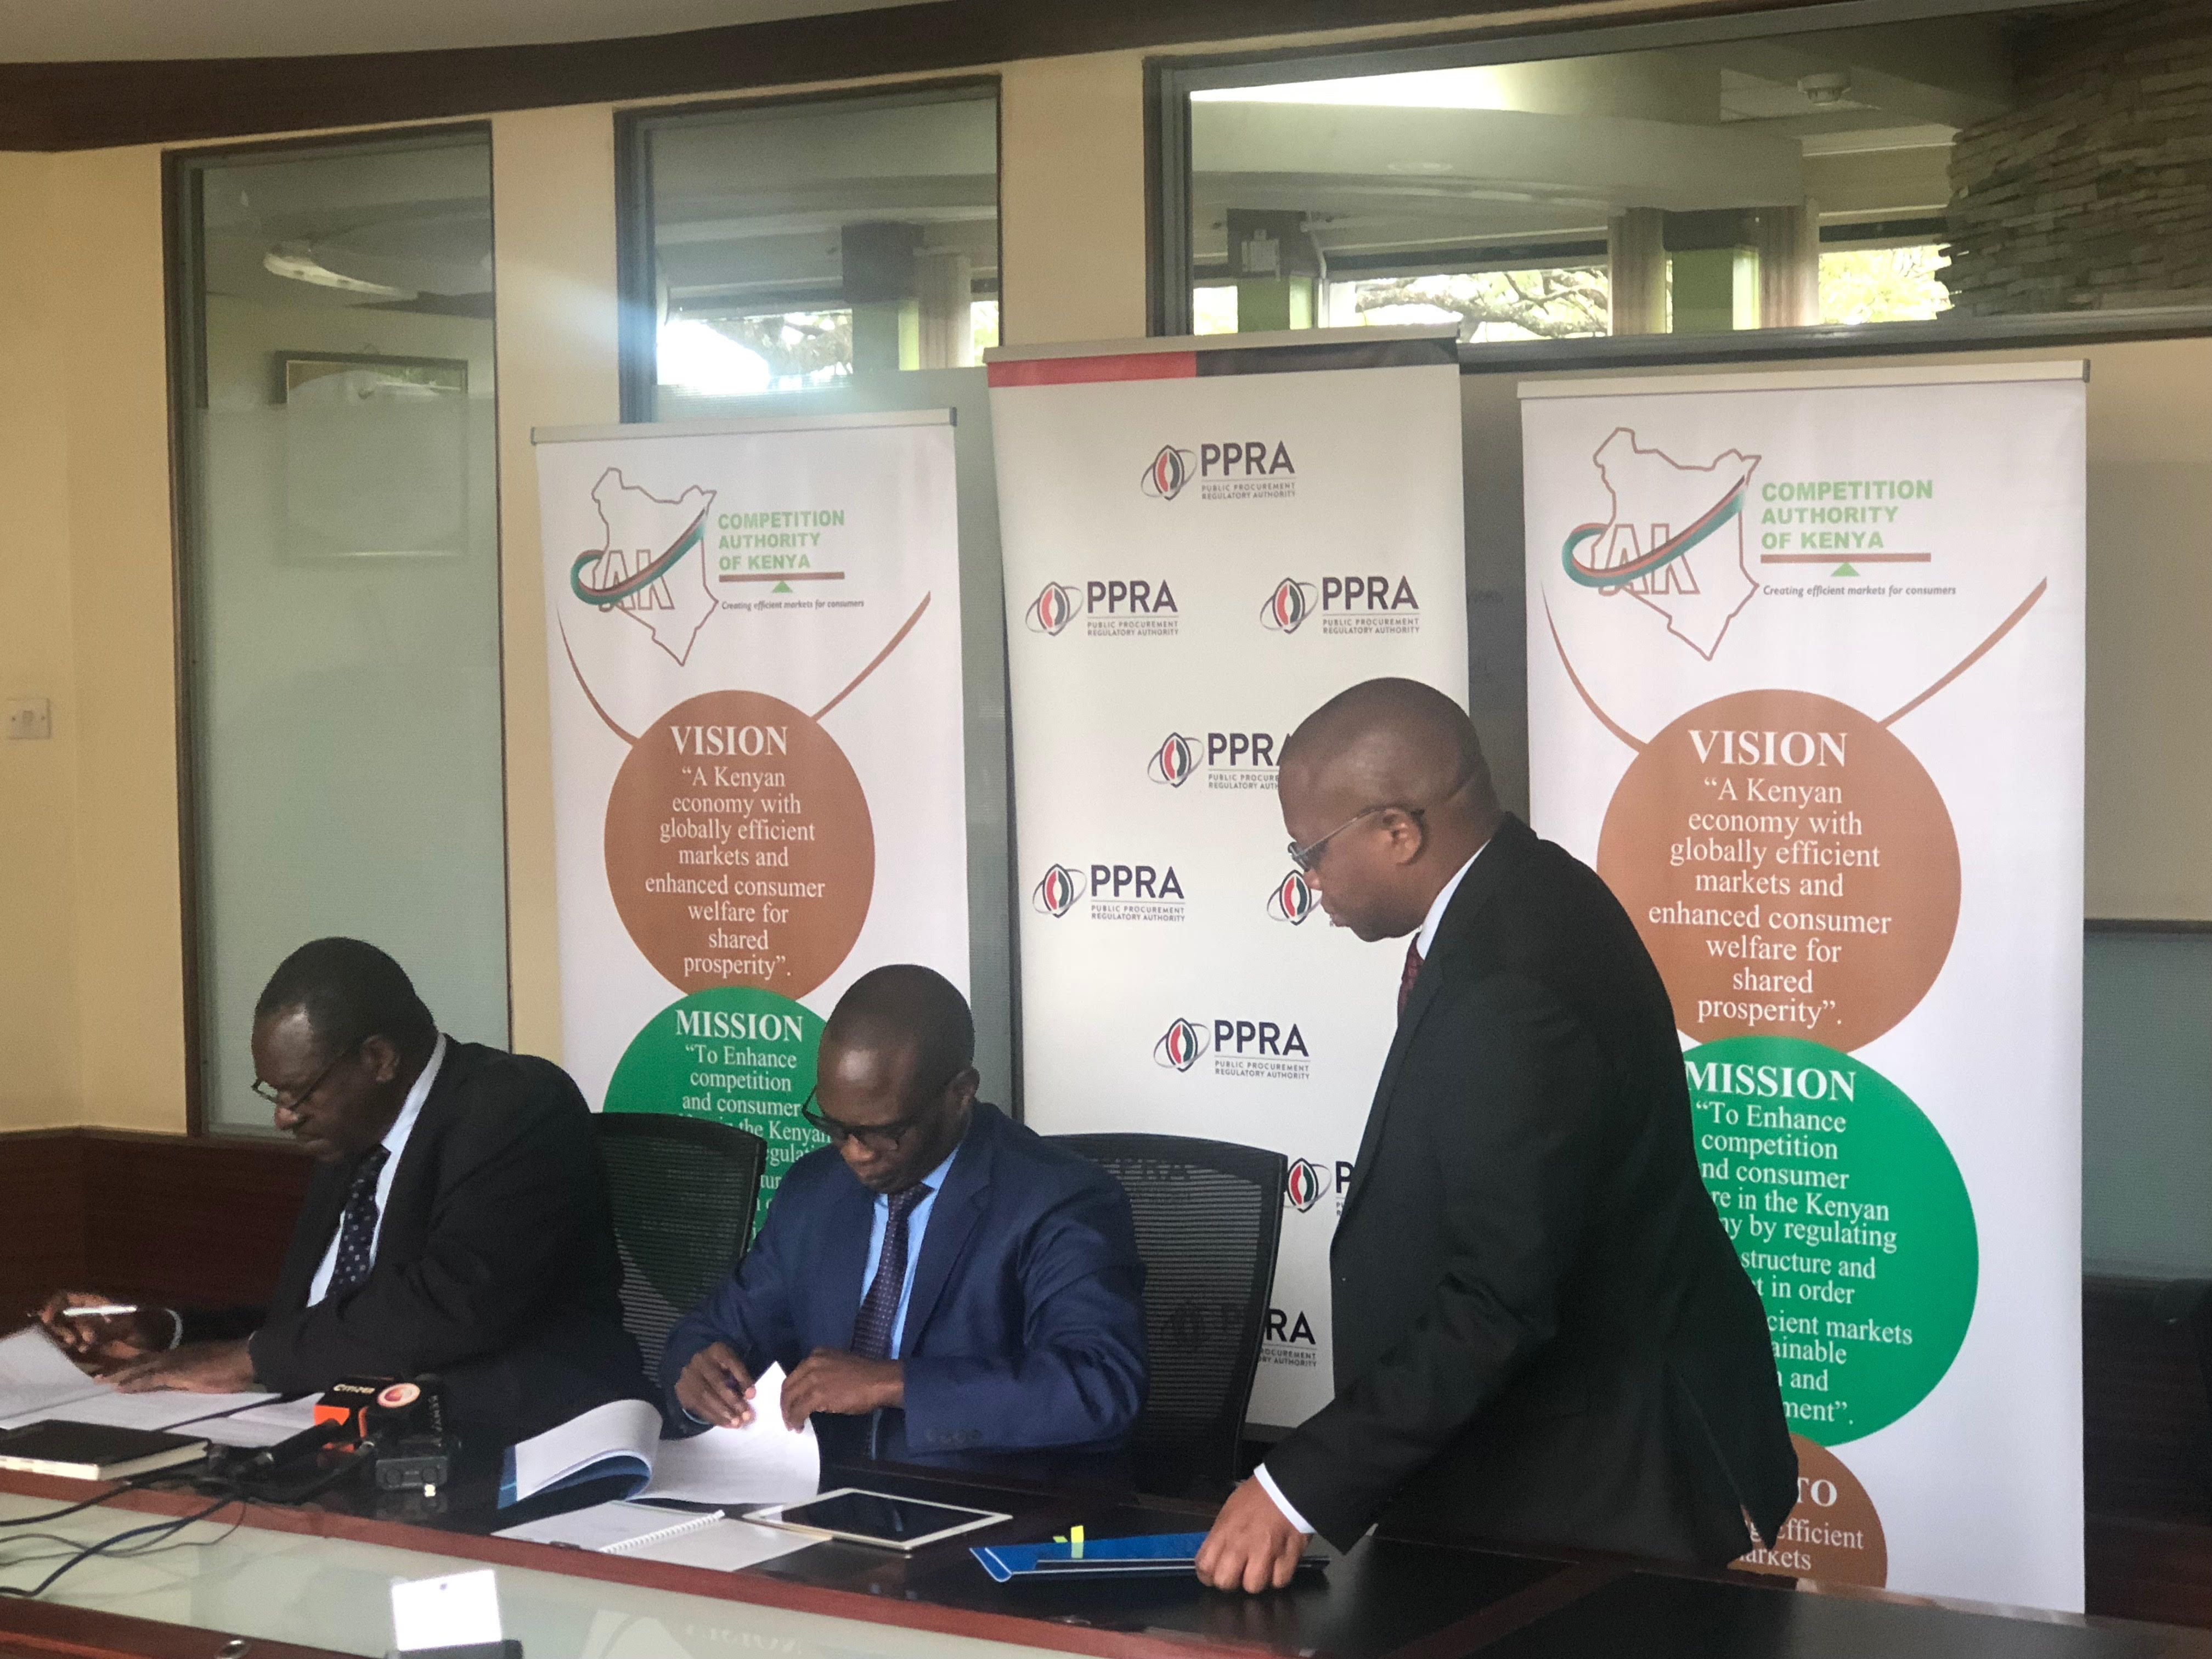 MoU signing between the Competition Authority of Kenya (CAK) and Public Procurement Regulatory Authority (PPRA) – June 2018